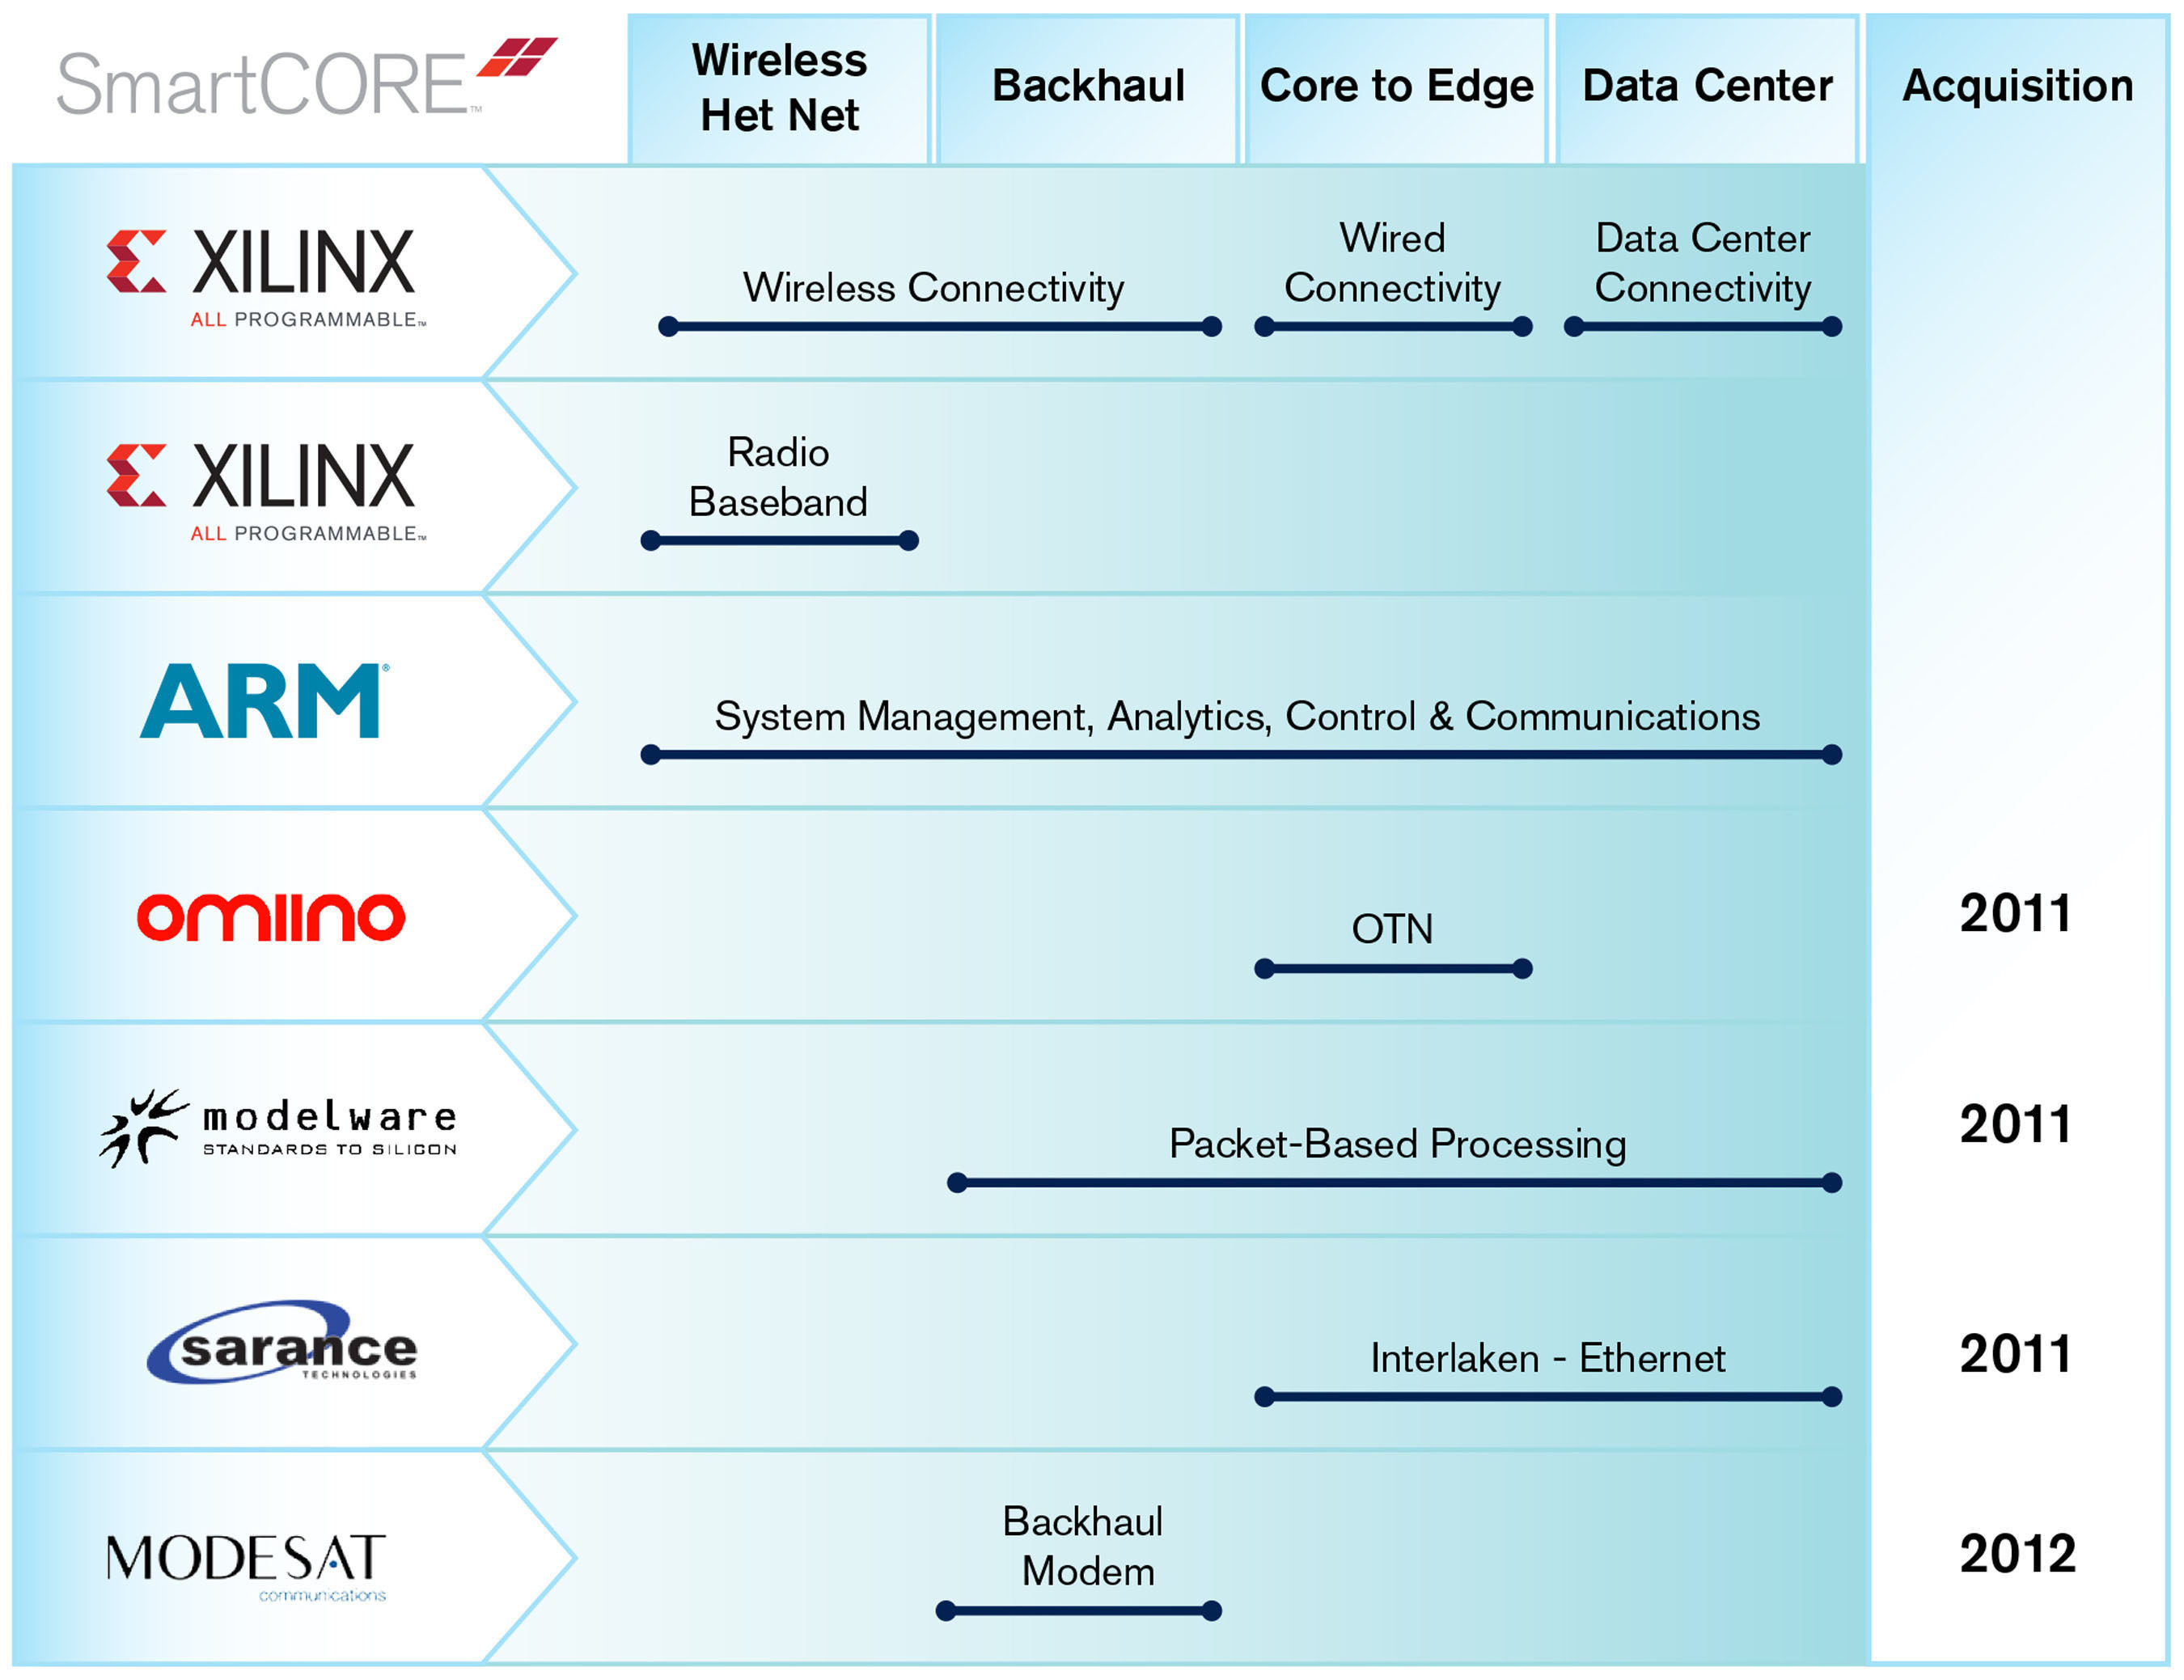 Xilinx smarter solutions address the growing gaps in ASIC and ASSP offerings for next-generation smarter ...